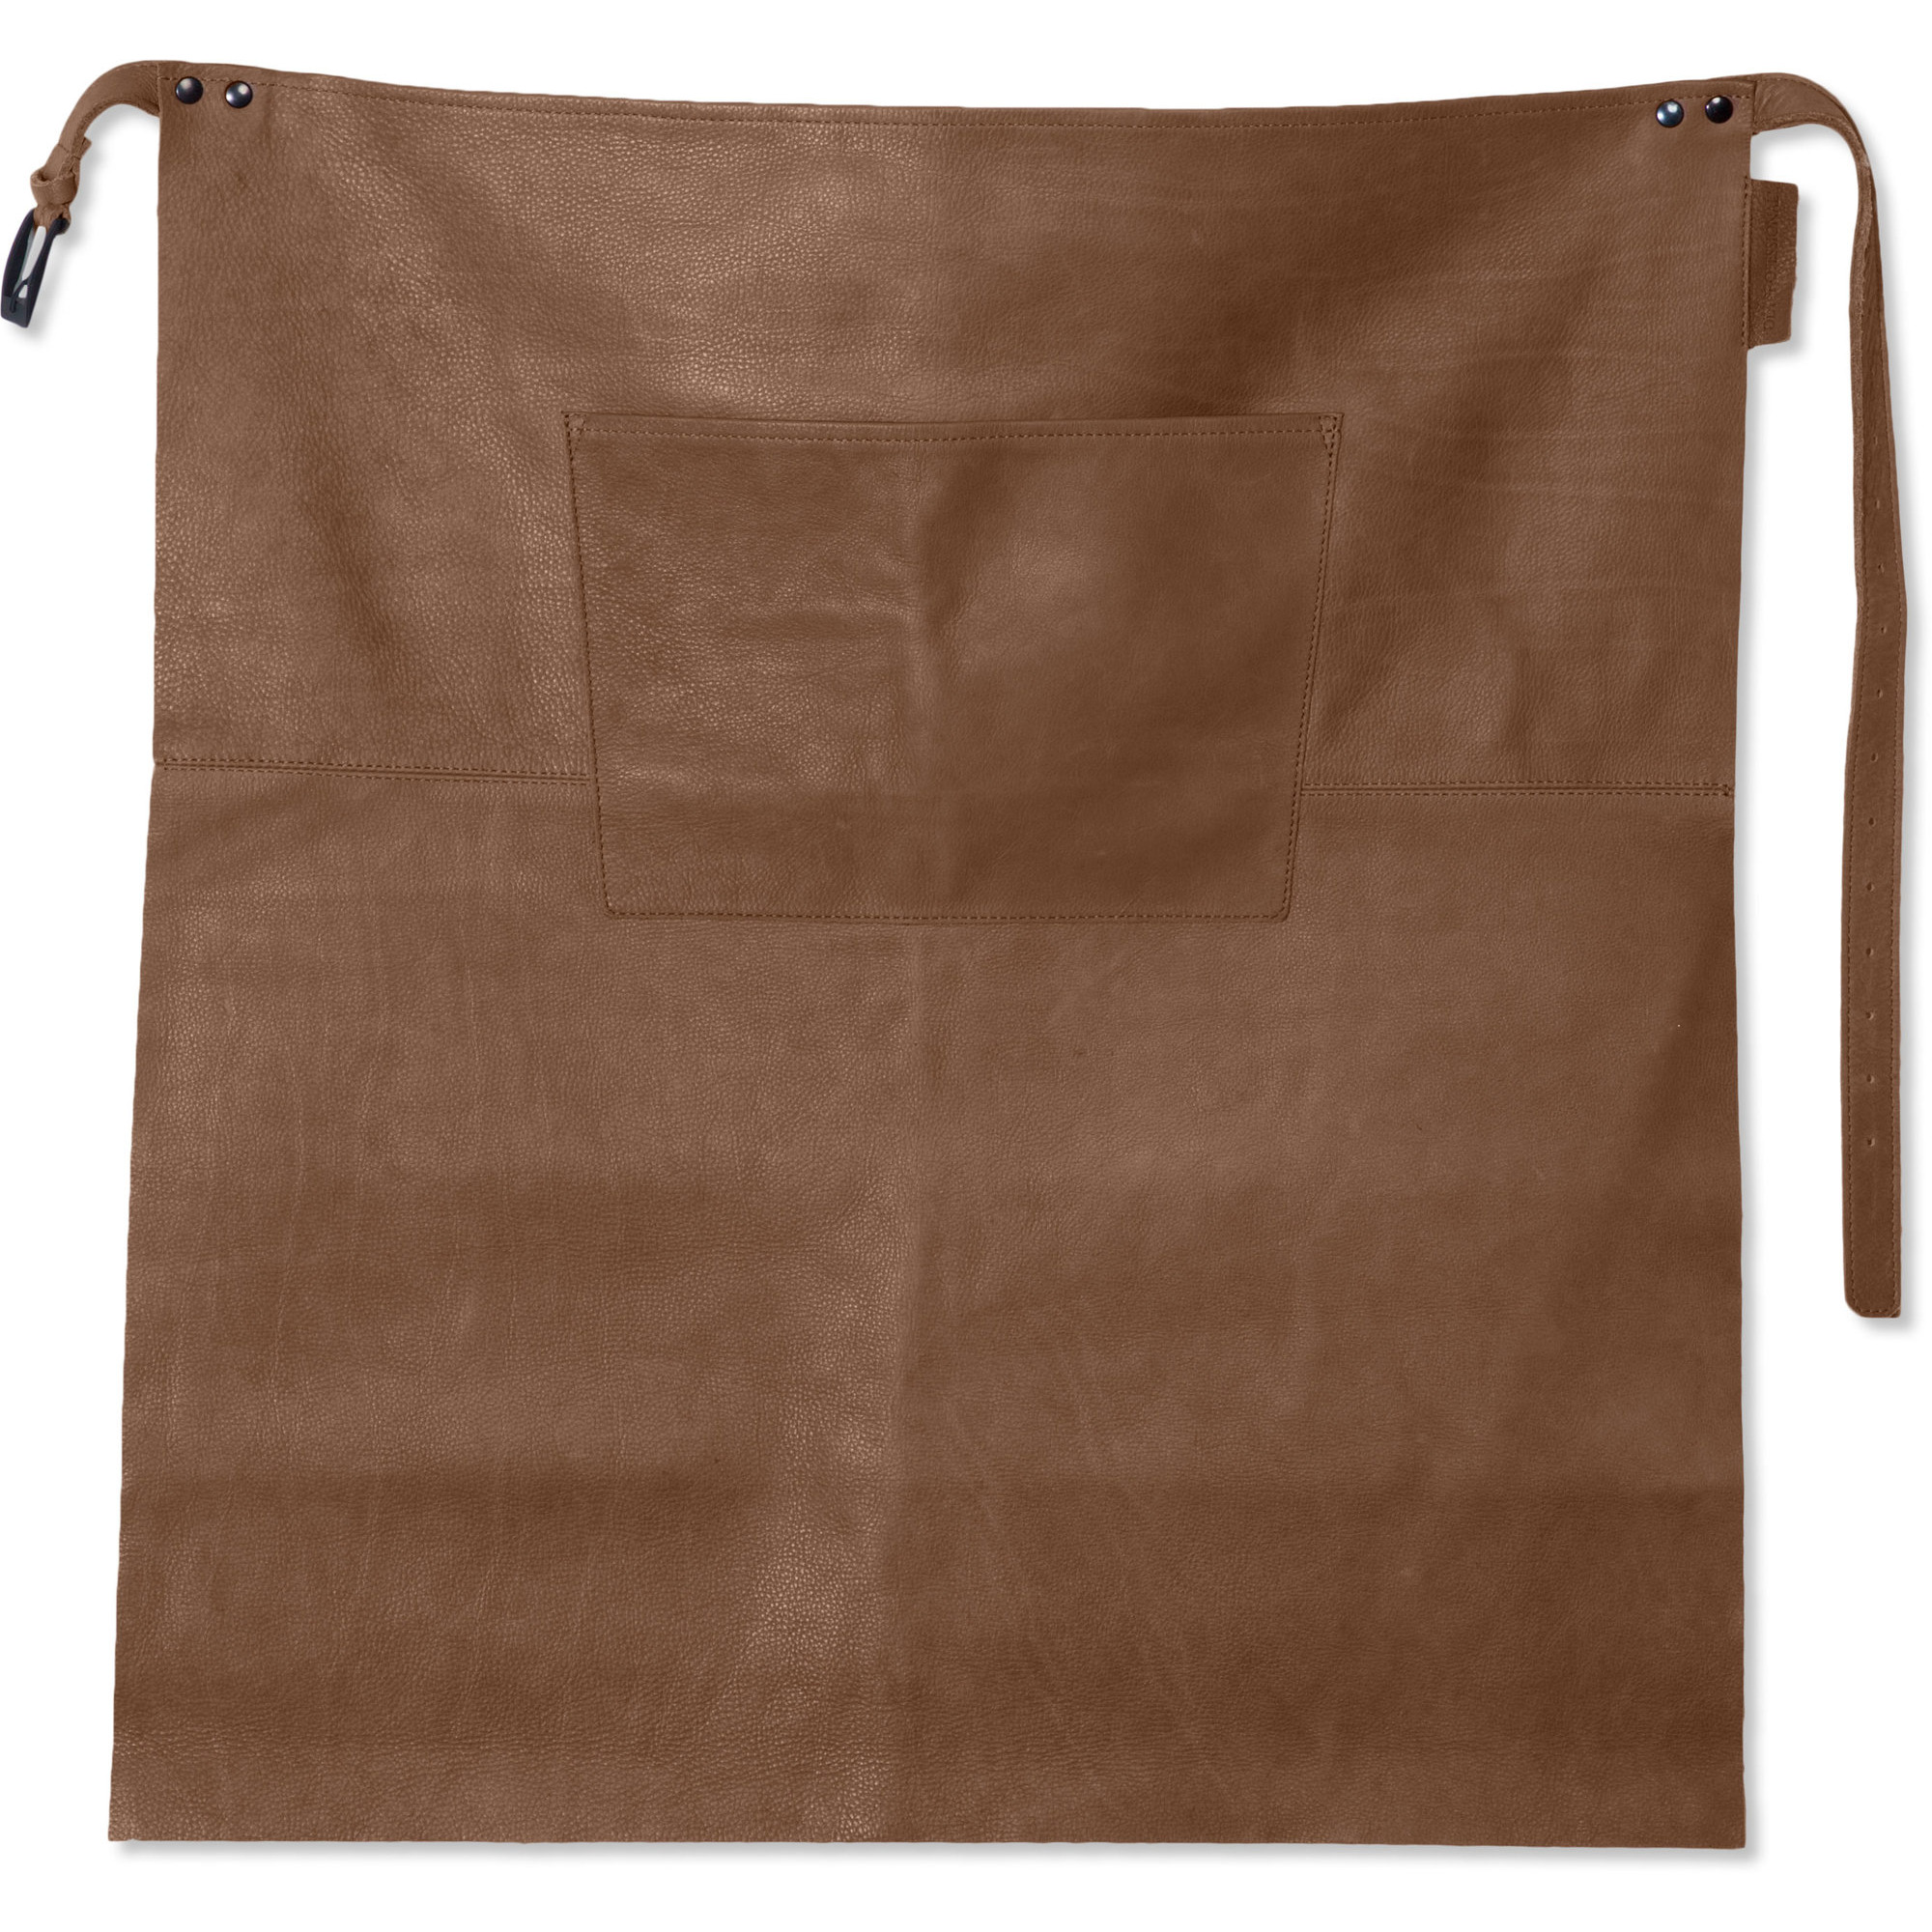 DutchDeluxes Professional Waist Apron Long Taupe